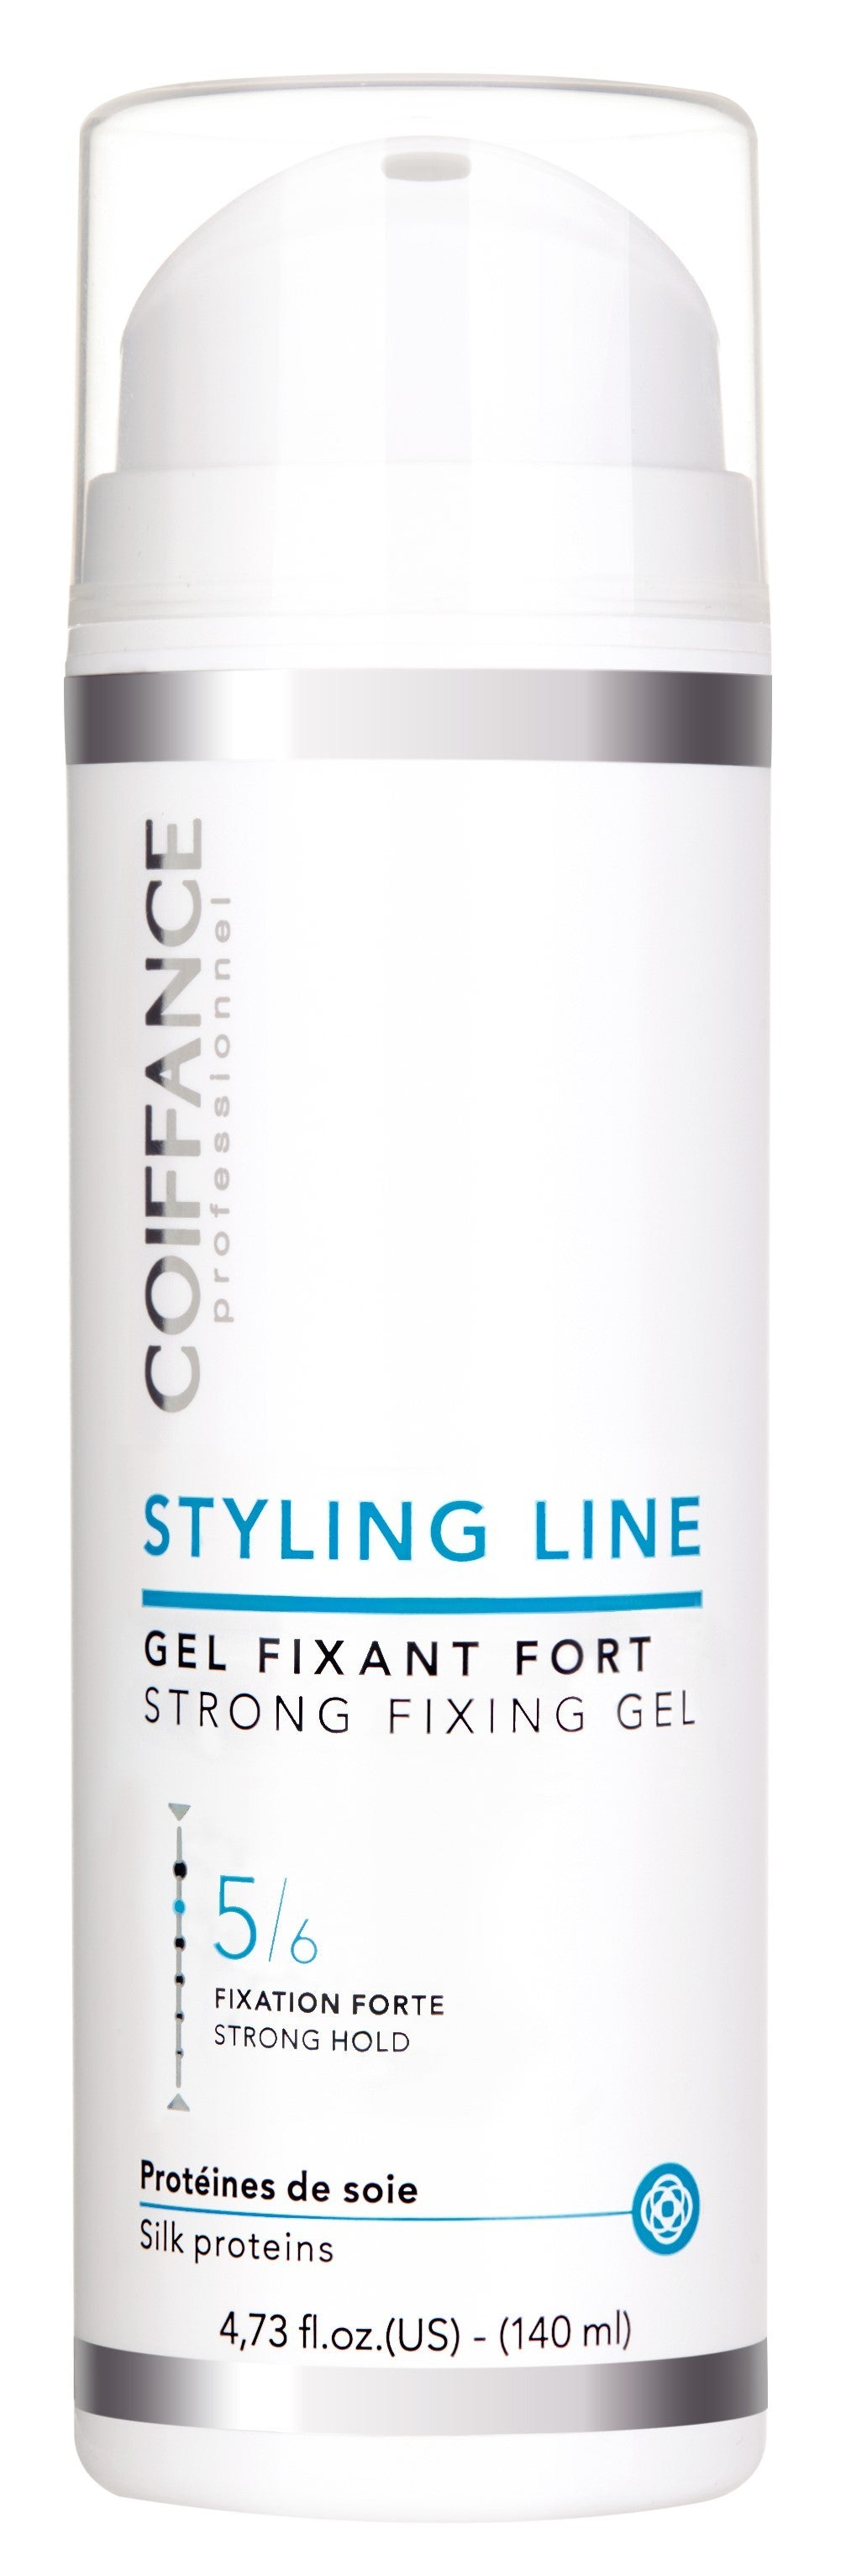 styling line - strong fixing gel